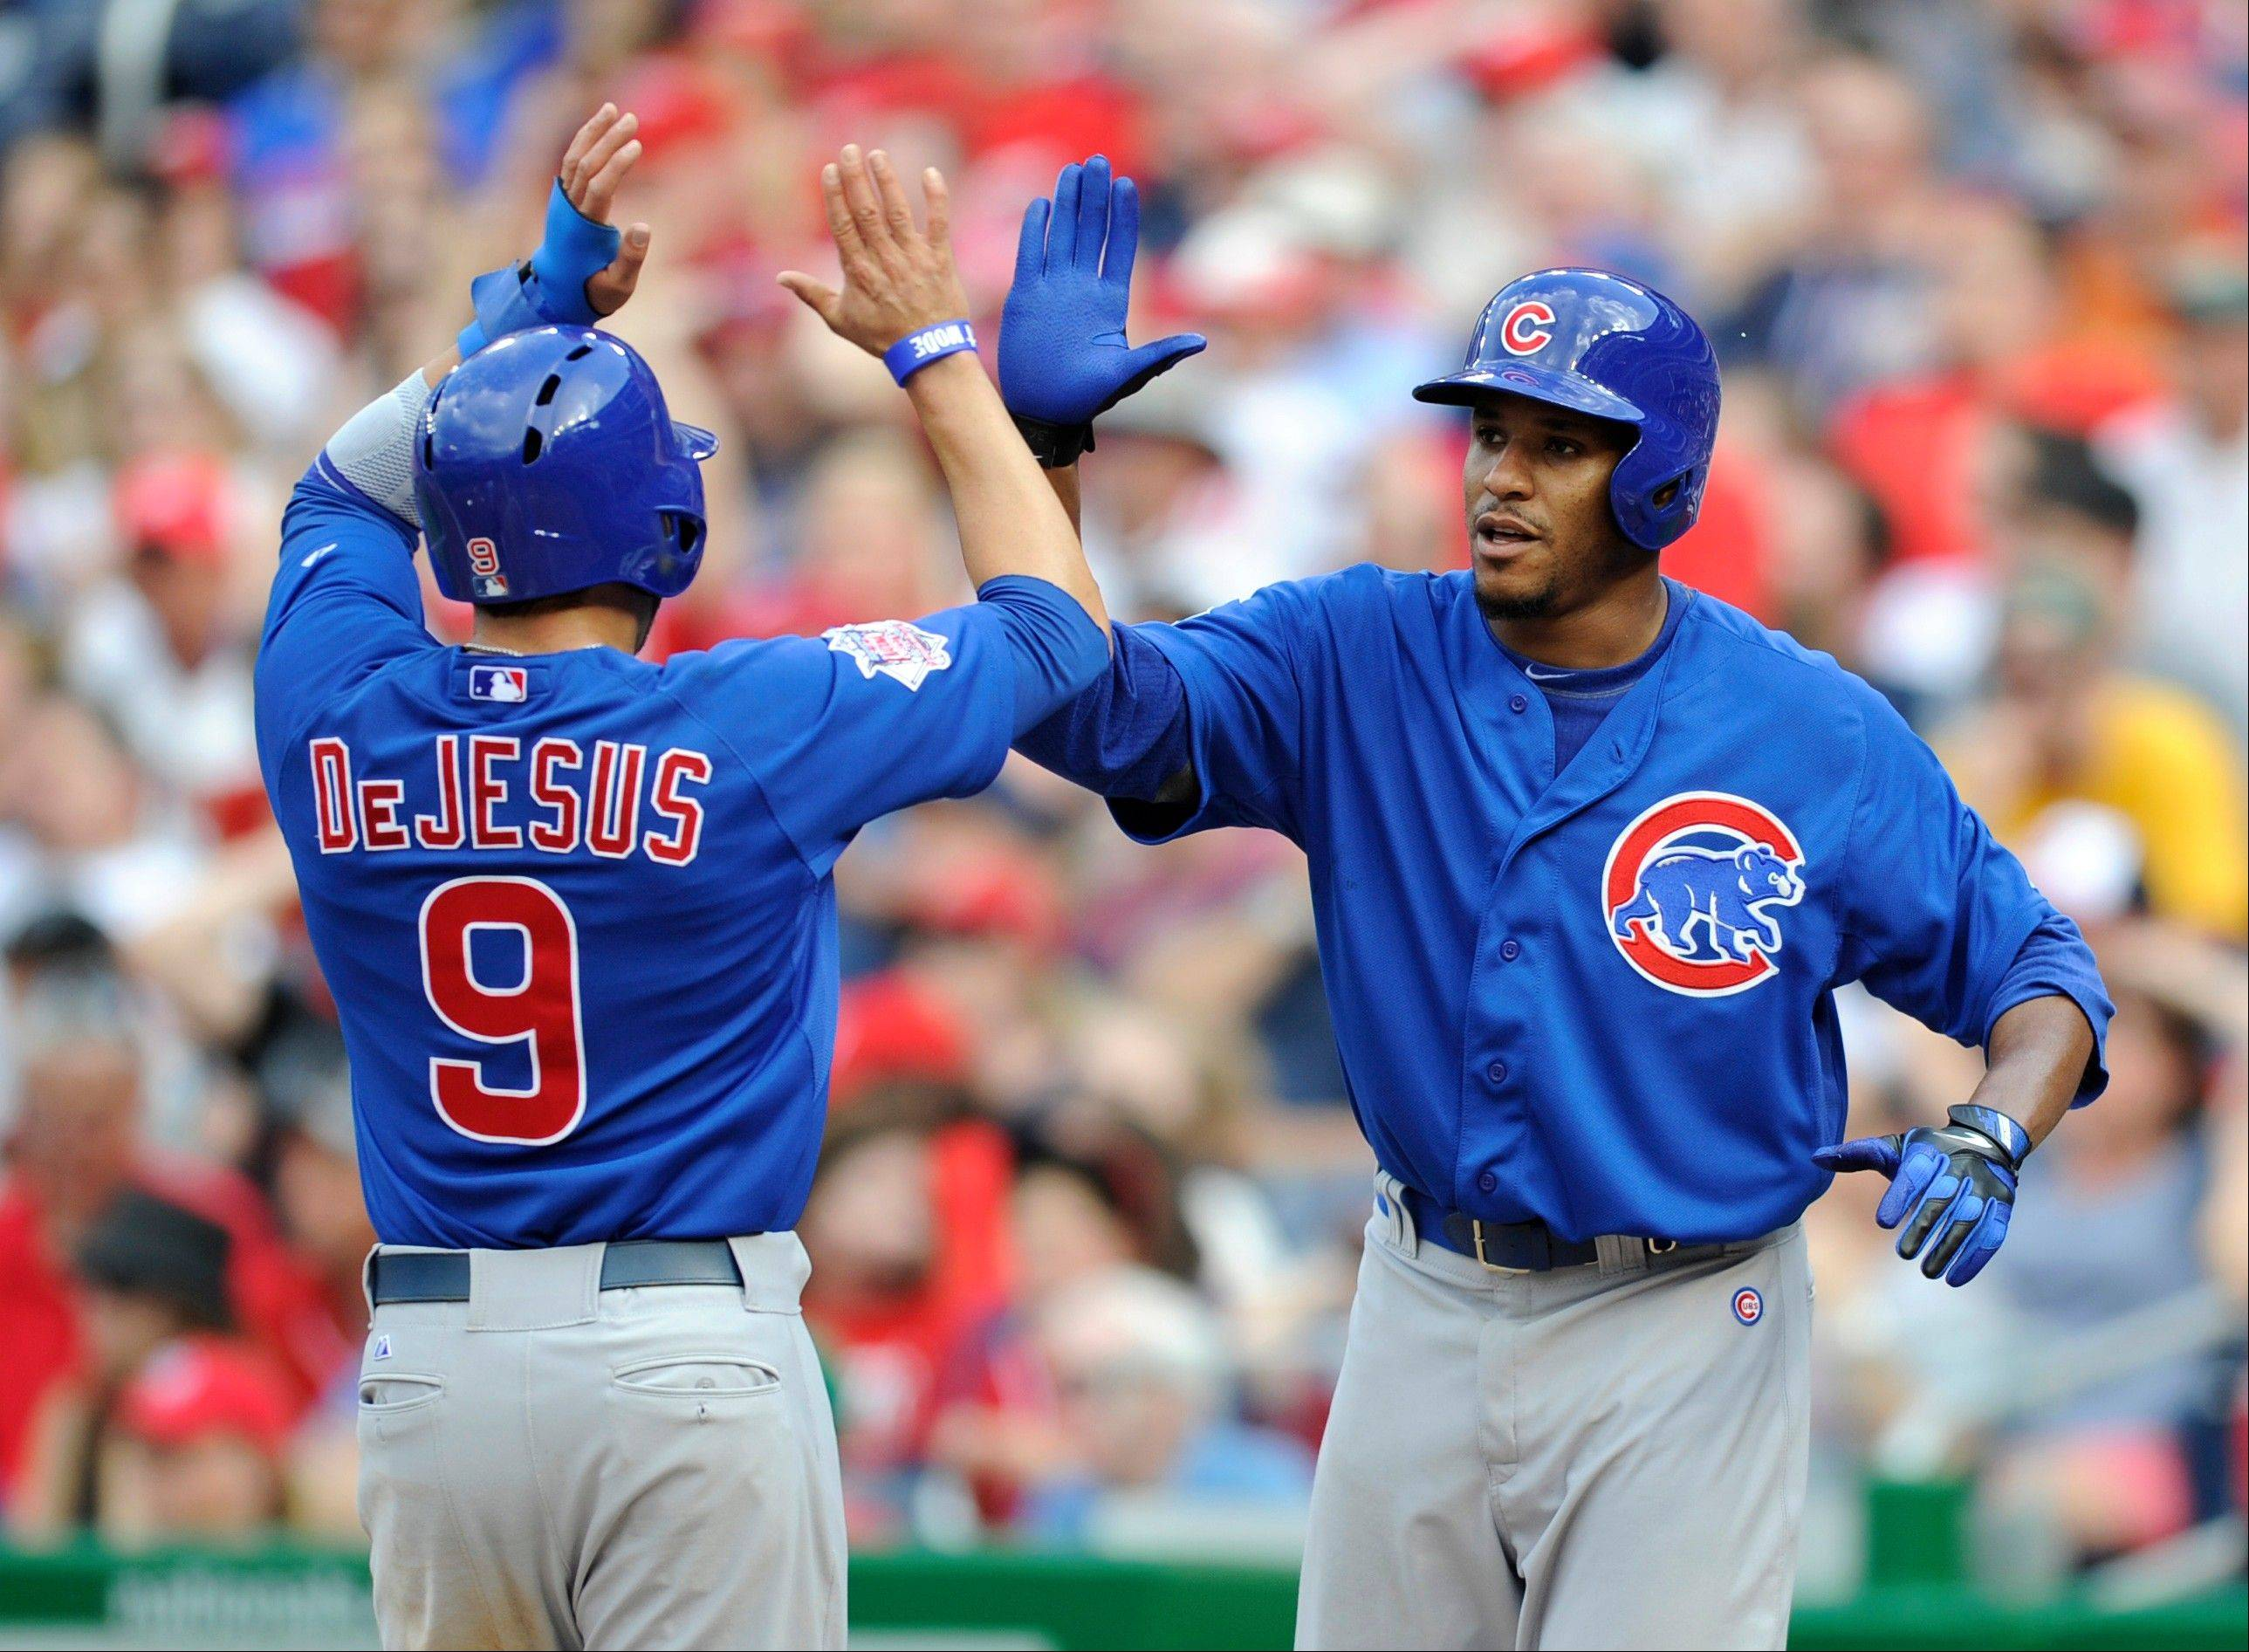 Cubs starting pitcher Edwin Jackson, right, gives teammate David DeJesus a high-five Saturday after they scored on a single by Anthony Rizzo during the fifth inning against the Washington Nationals in Washington.